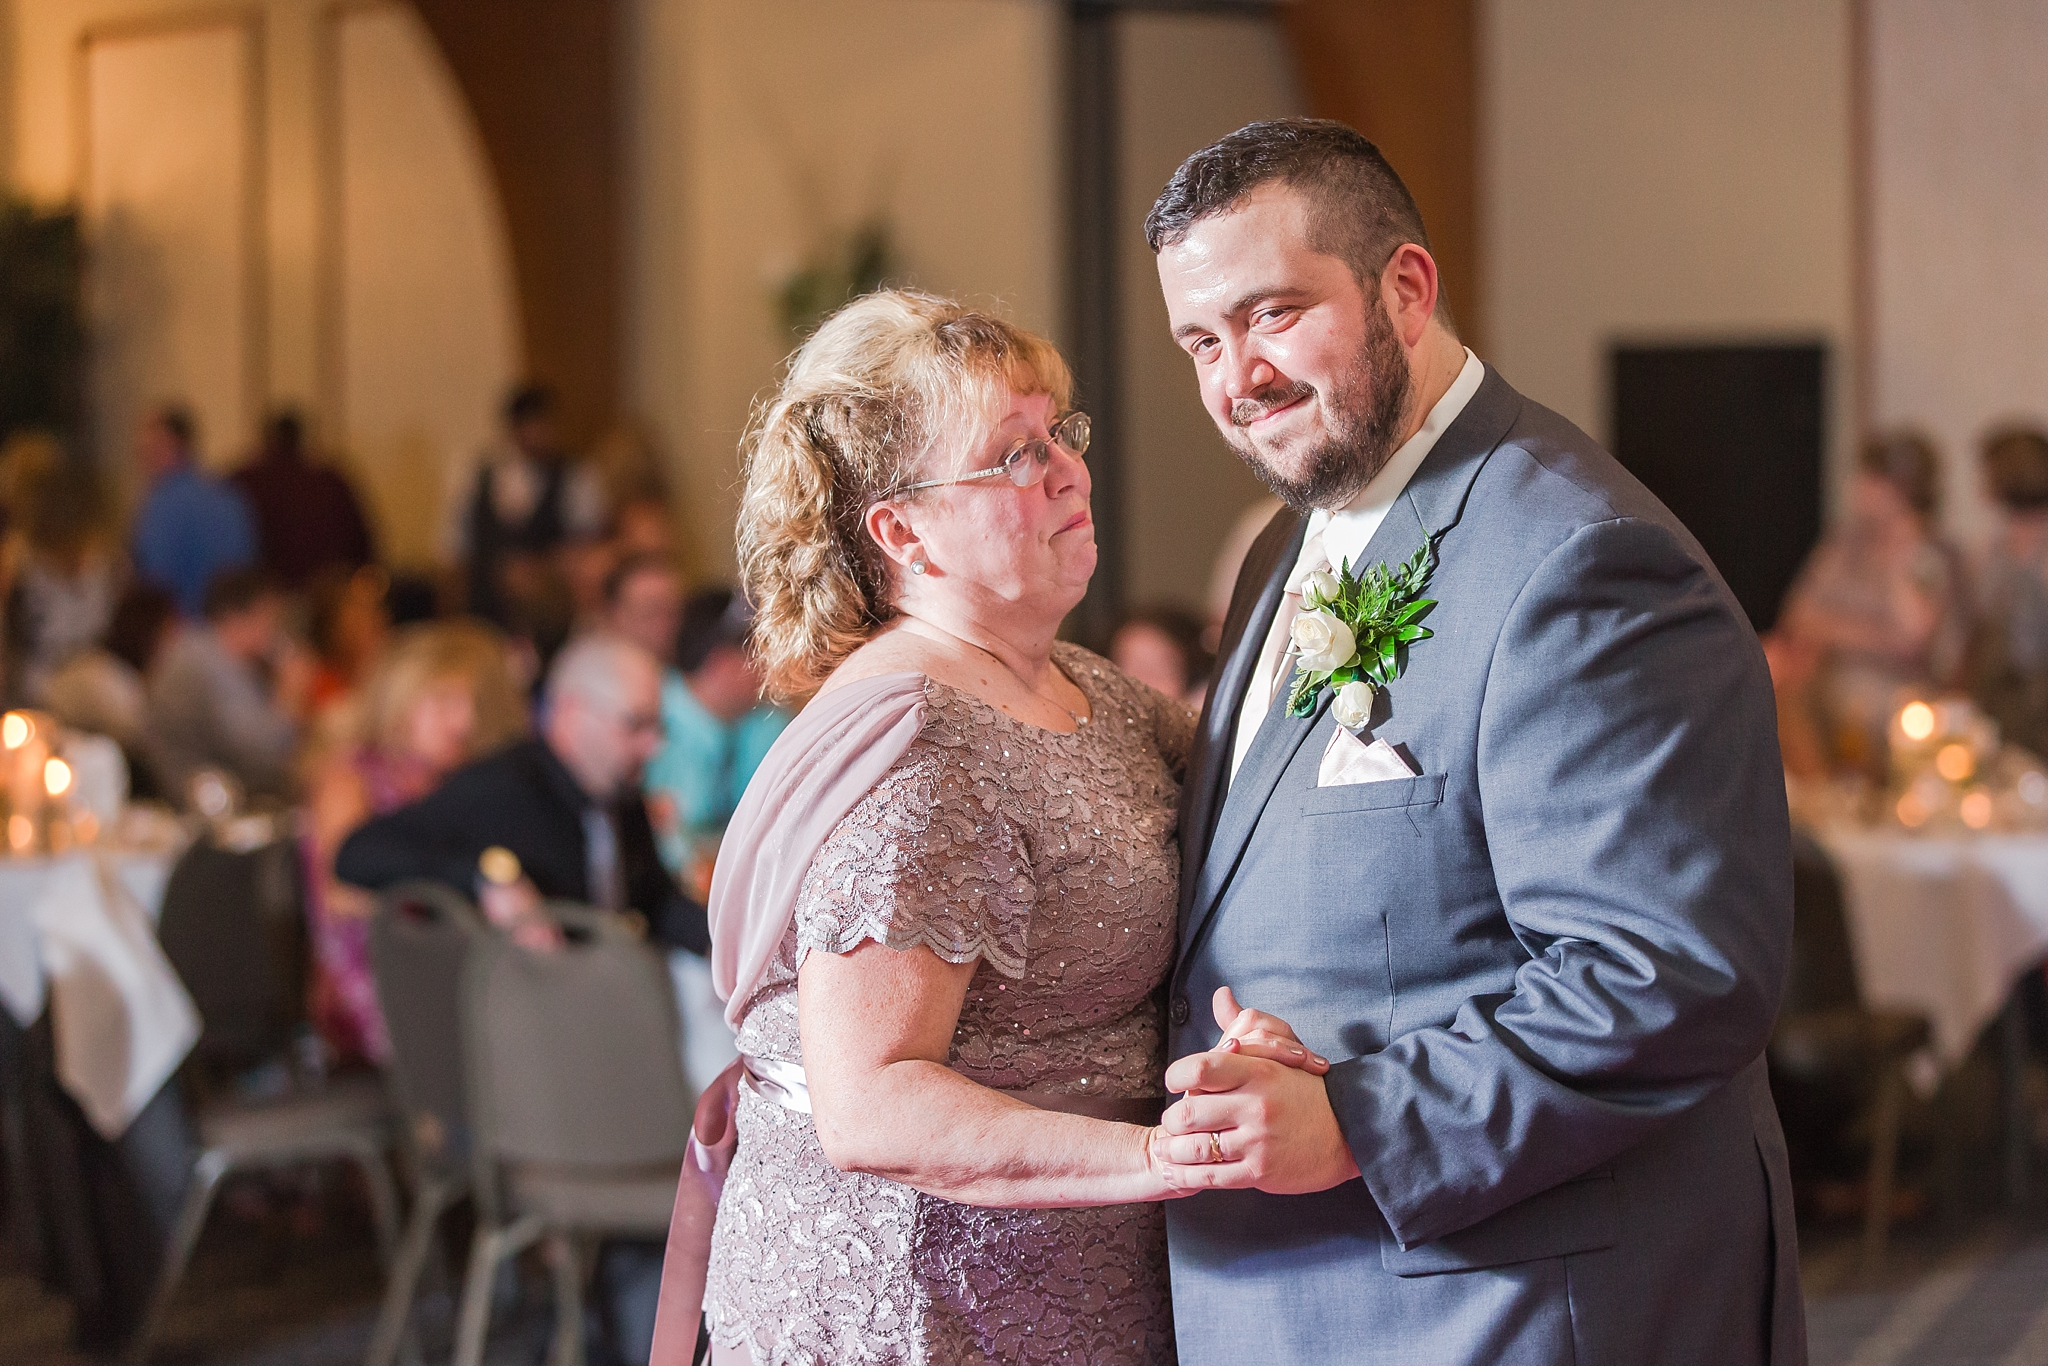 emotional-laid-back-romantic-wedding-photos-at-adrian-college-herrick-chapel-in-adrian-michigan-by-courtney-carolyn-photography_0080.jpg